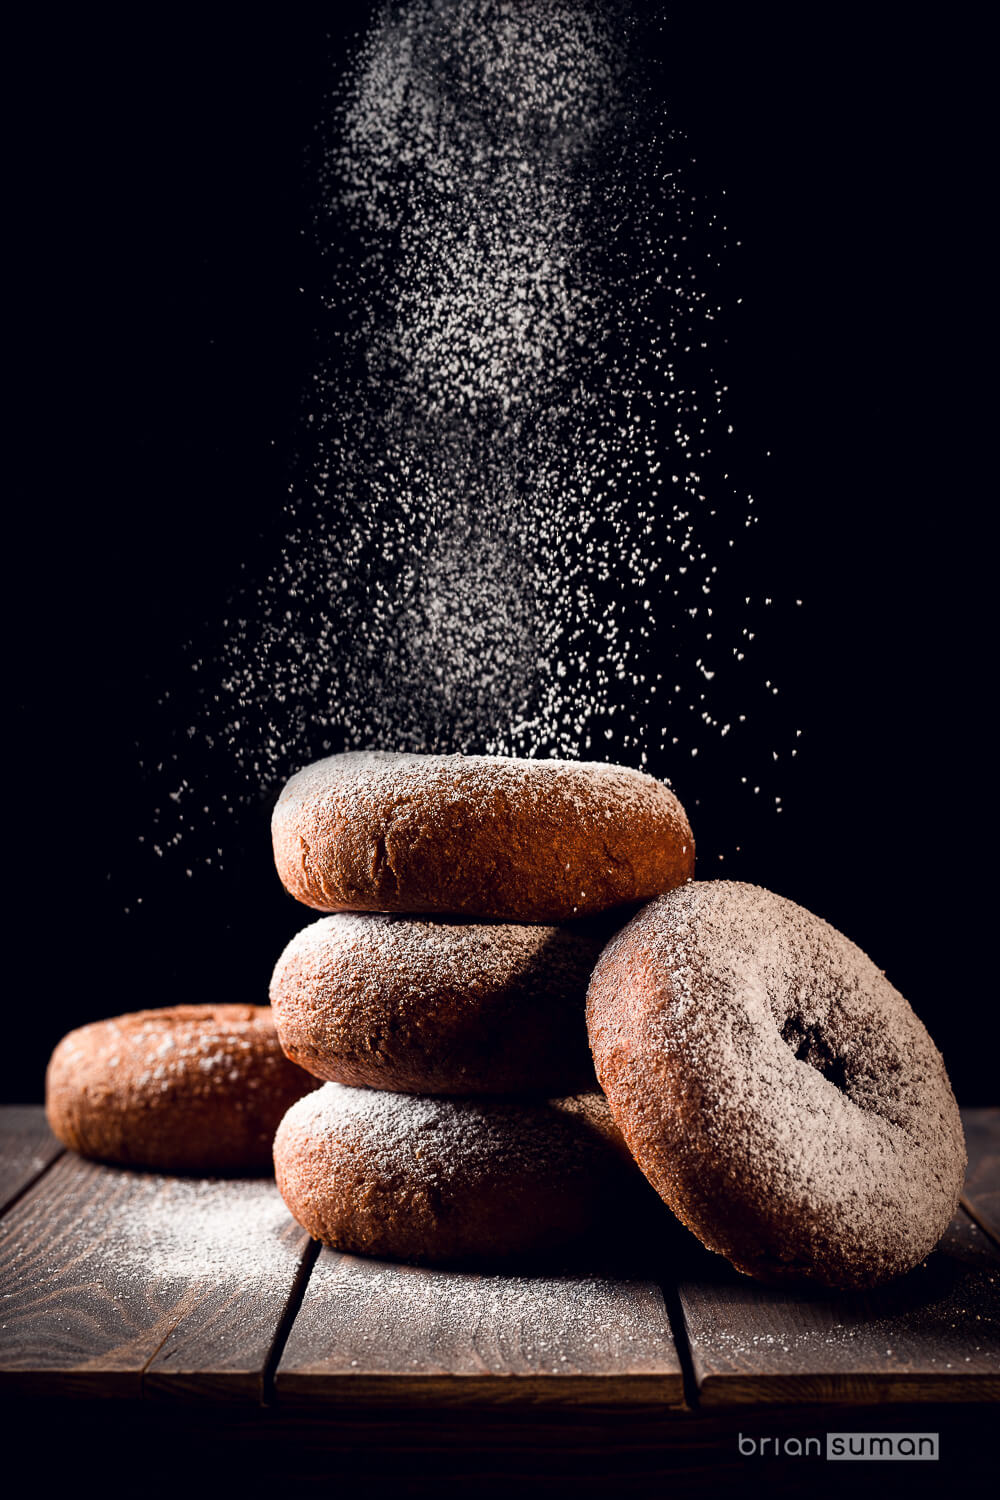 Powdered Donuts - Breakfast Series-0002-Brian Suman Photography.jpg